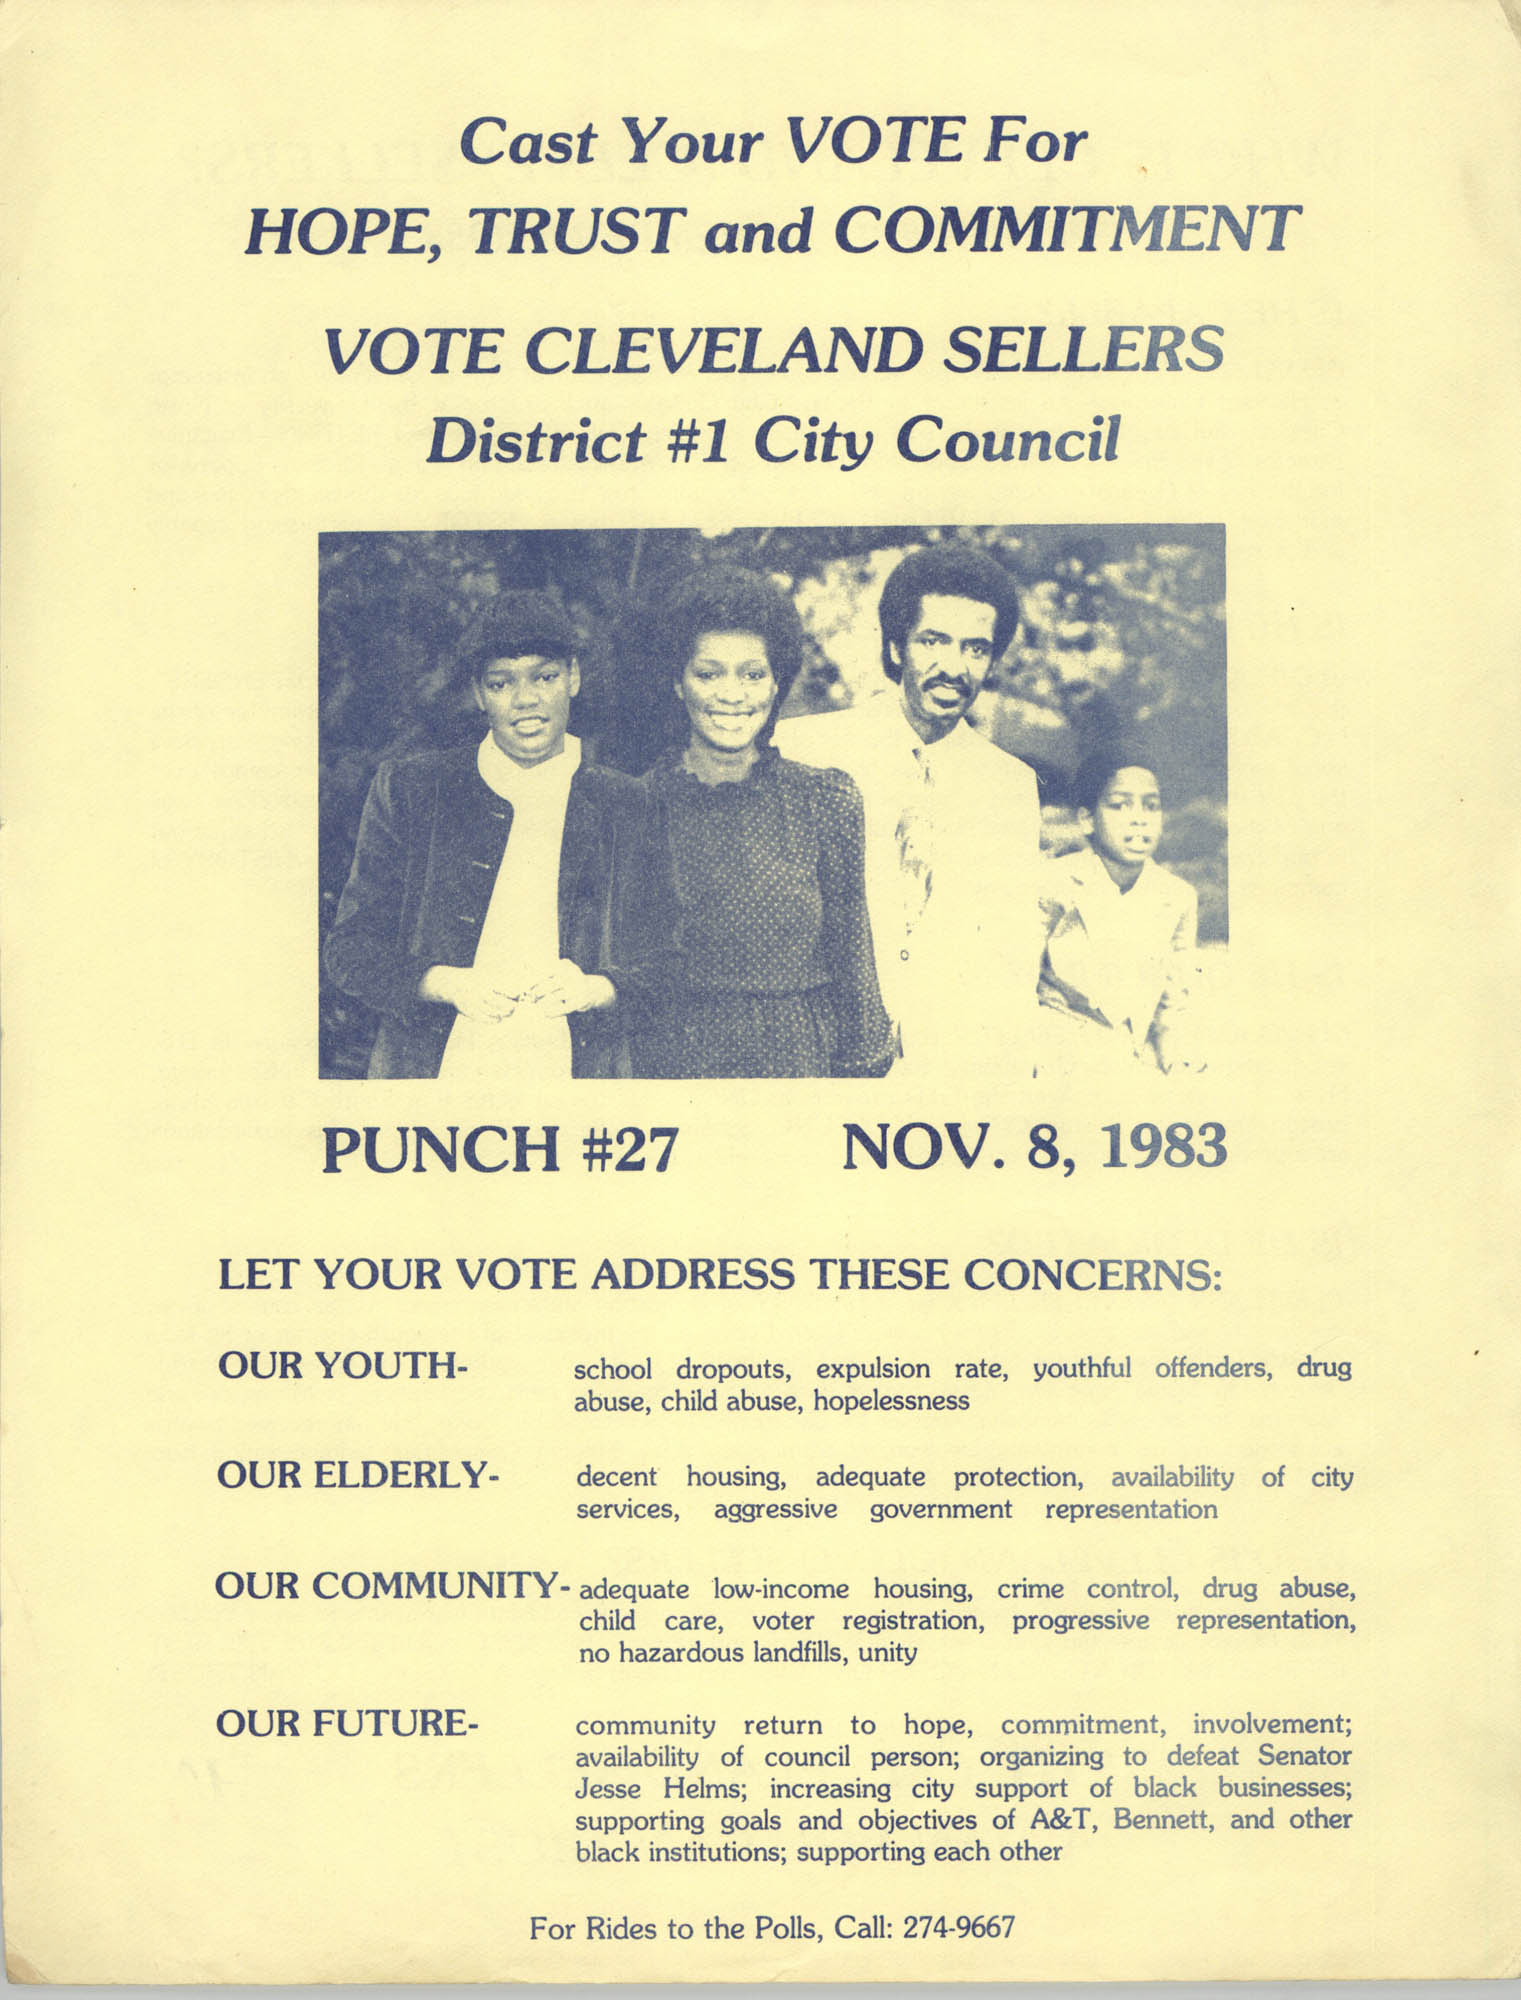 Political Flyer for Cleveland Sellers, District 1 City County, November 8, 1983